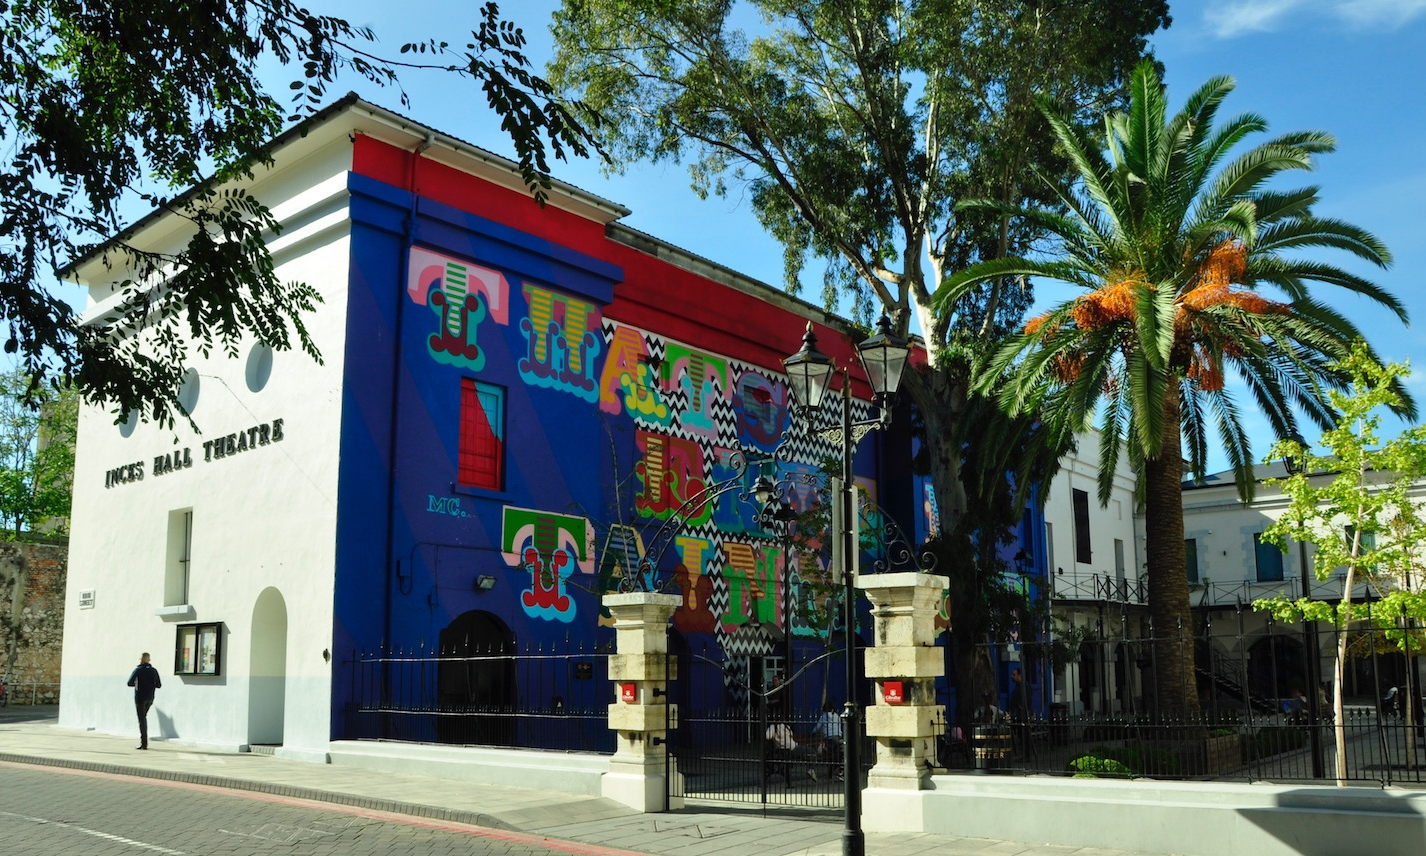 Street Art - You'll find it all over town but when you spot this striking mural you've reached the end of Main Street.